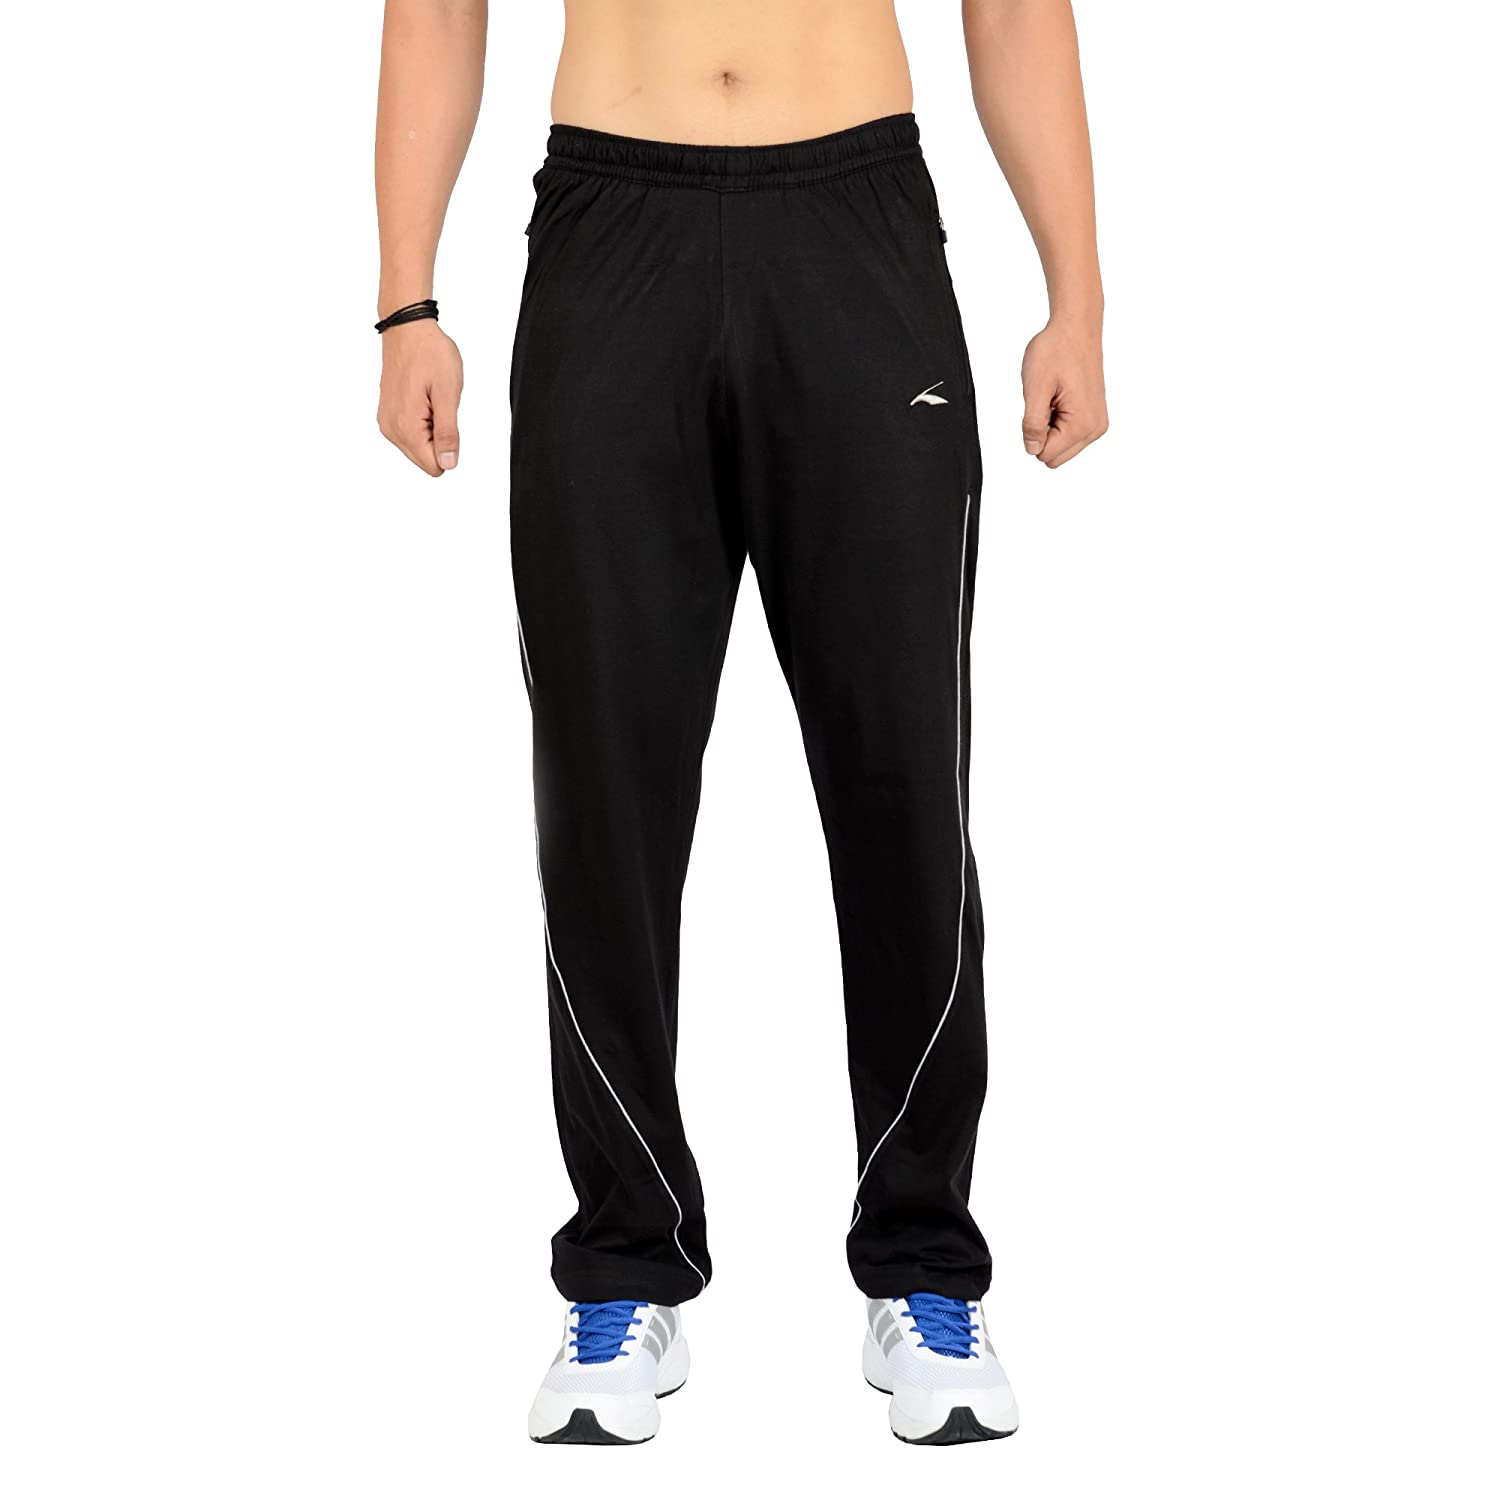 another chance many styles factory Buy Champ Gym Lower with Zip Pocket & Back Pocket With Flap ...